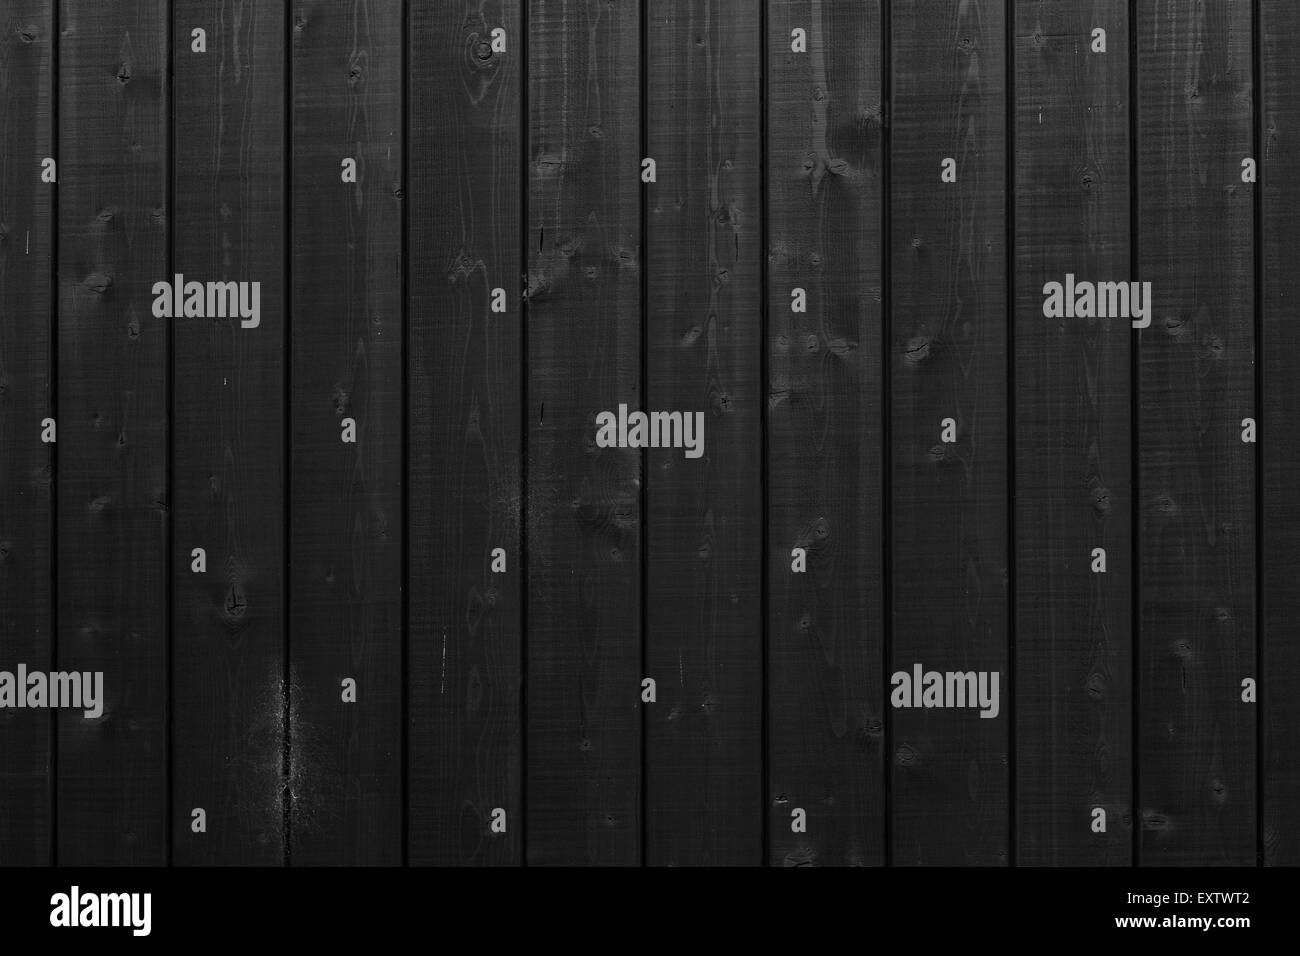 background that consists of vertical black planks on wooden part of building - Stock Image